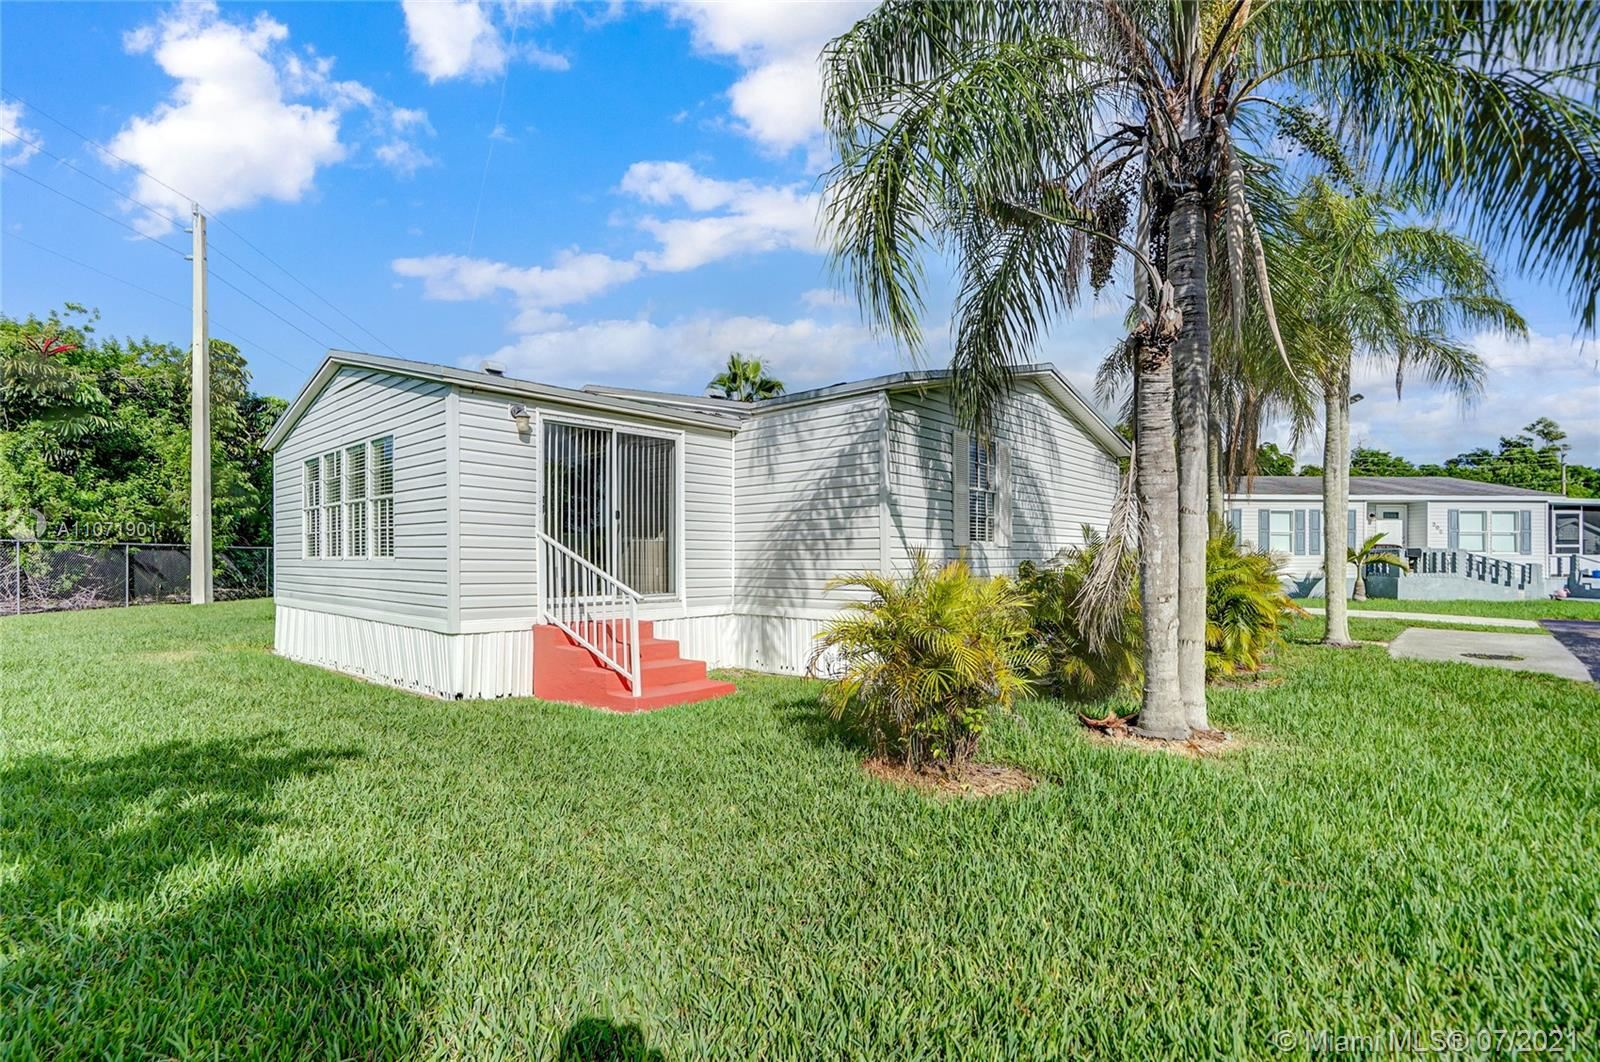 35303 SW 180 Ave, Homestead, FL 33034 - #: A11071901